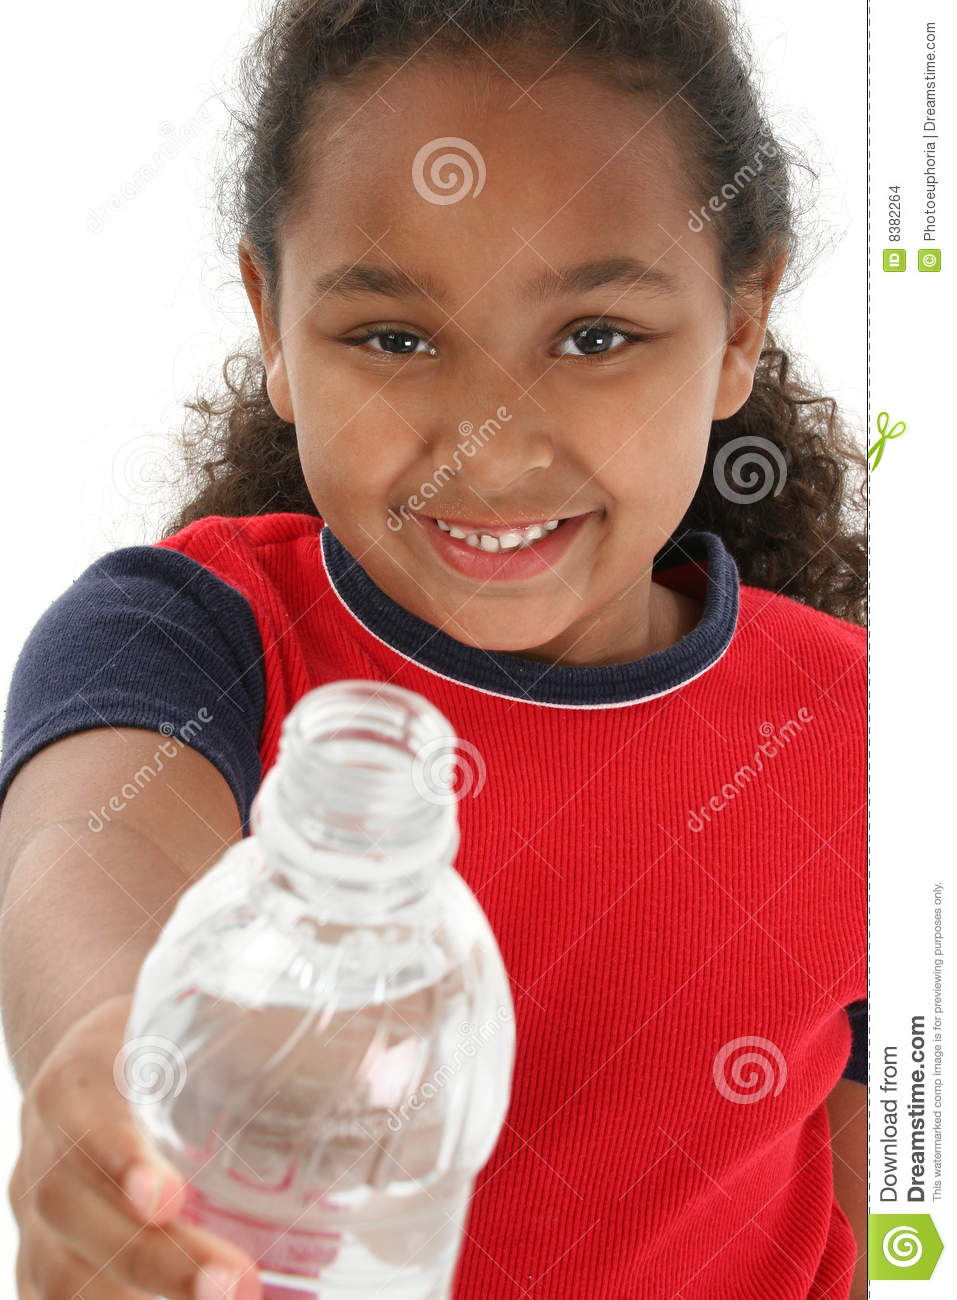 Girl Holding Water Bottle Stock Images - Image: 8382264